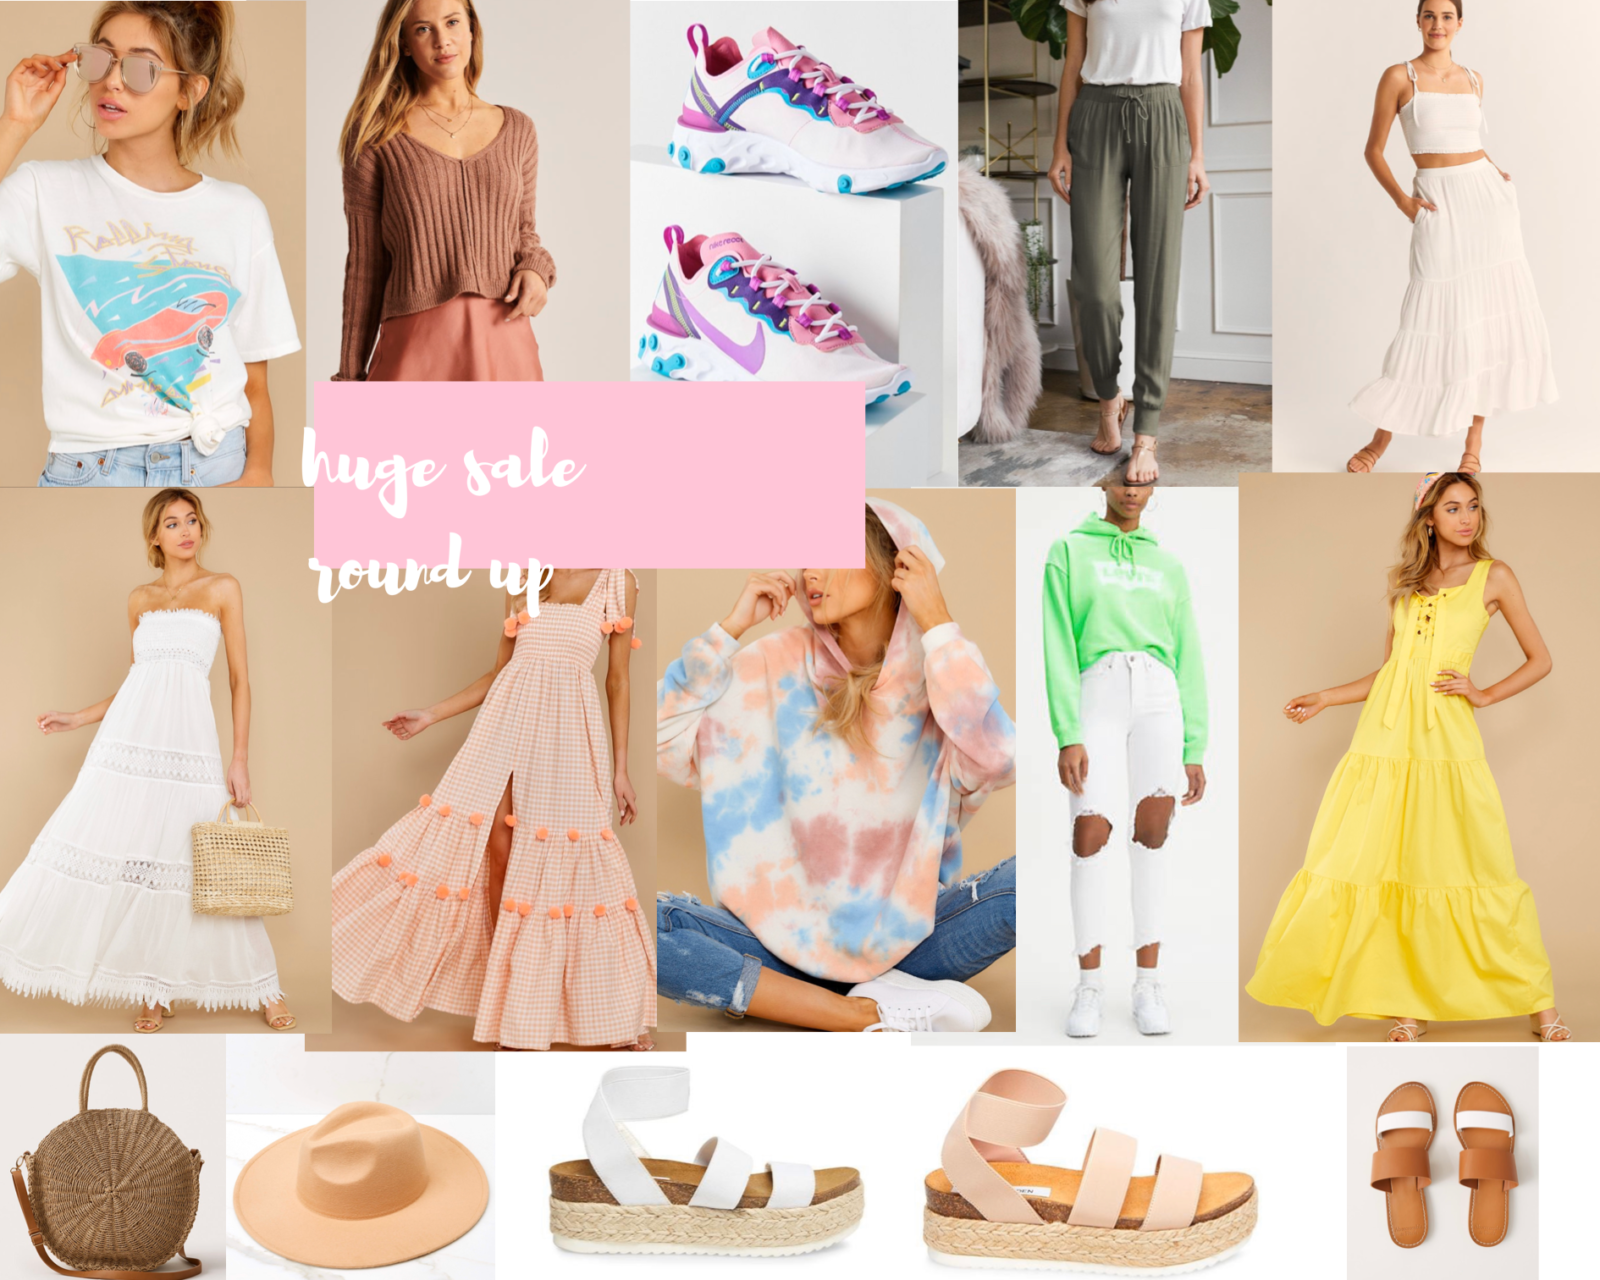 best sales and deals, anthropologie, urban outfitters, levis, nordstrom, dresses